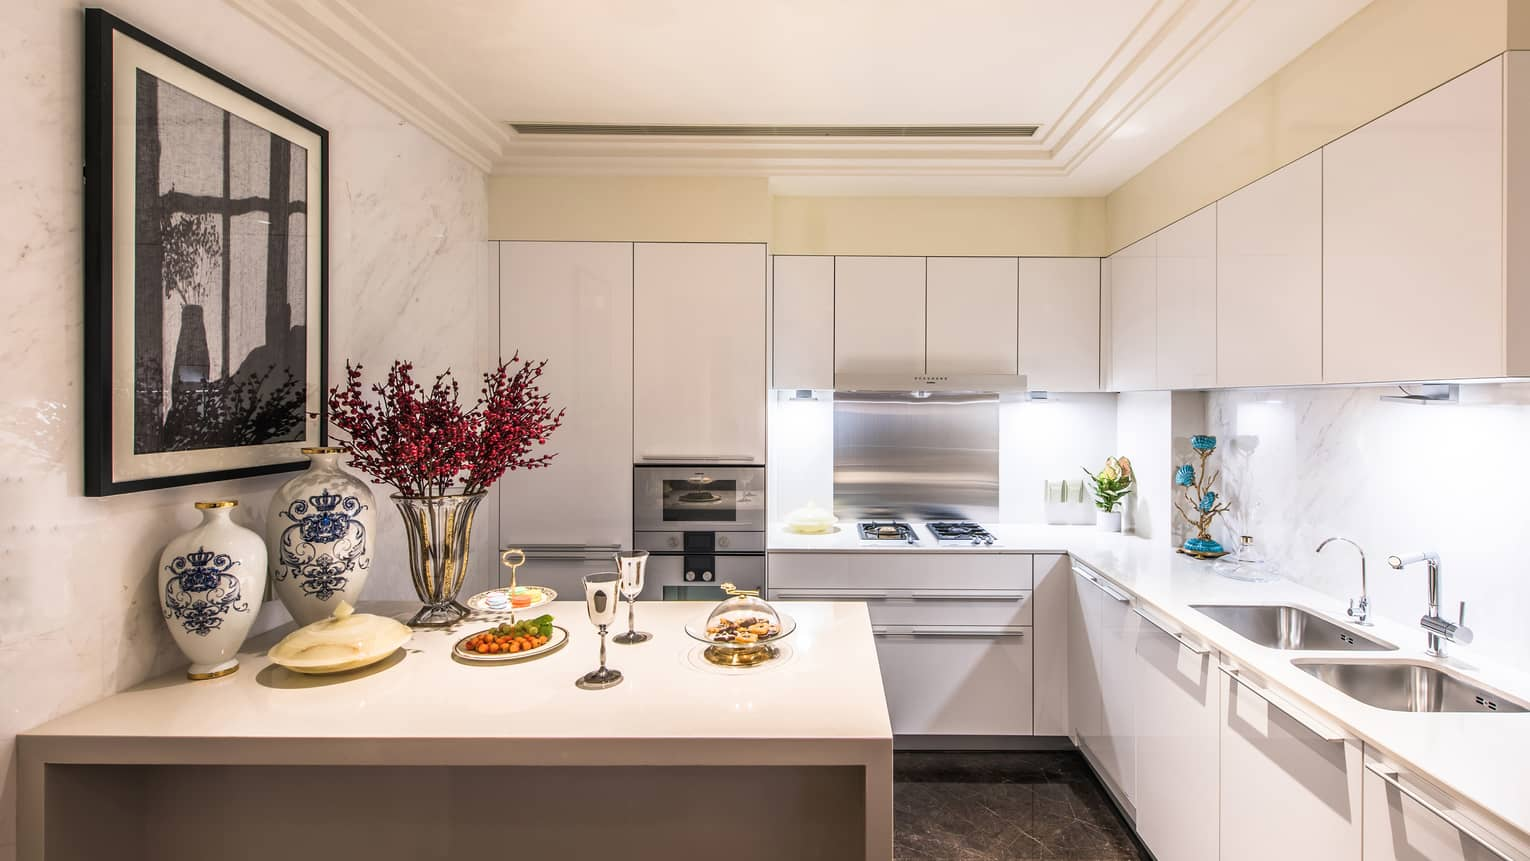 Kitchen with white cabinets, island counter with serving trays, wine glasses, vases and flowers